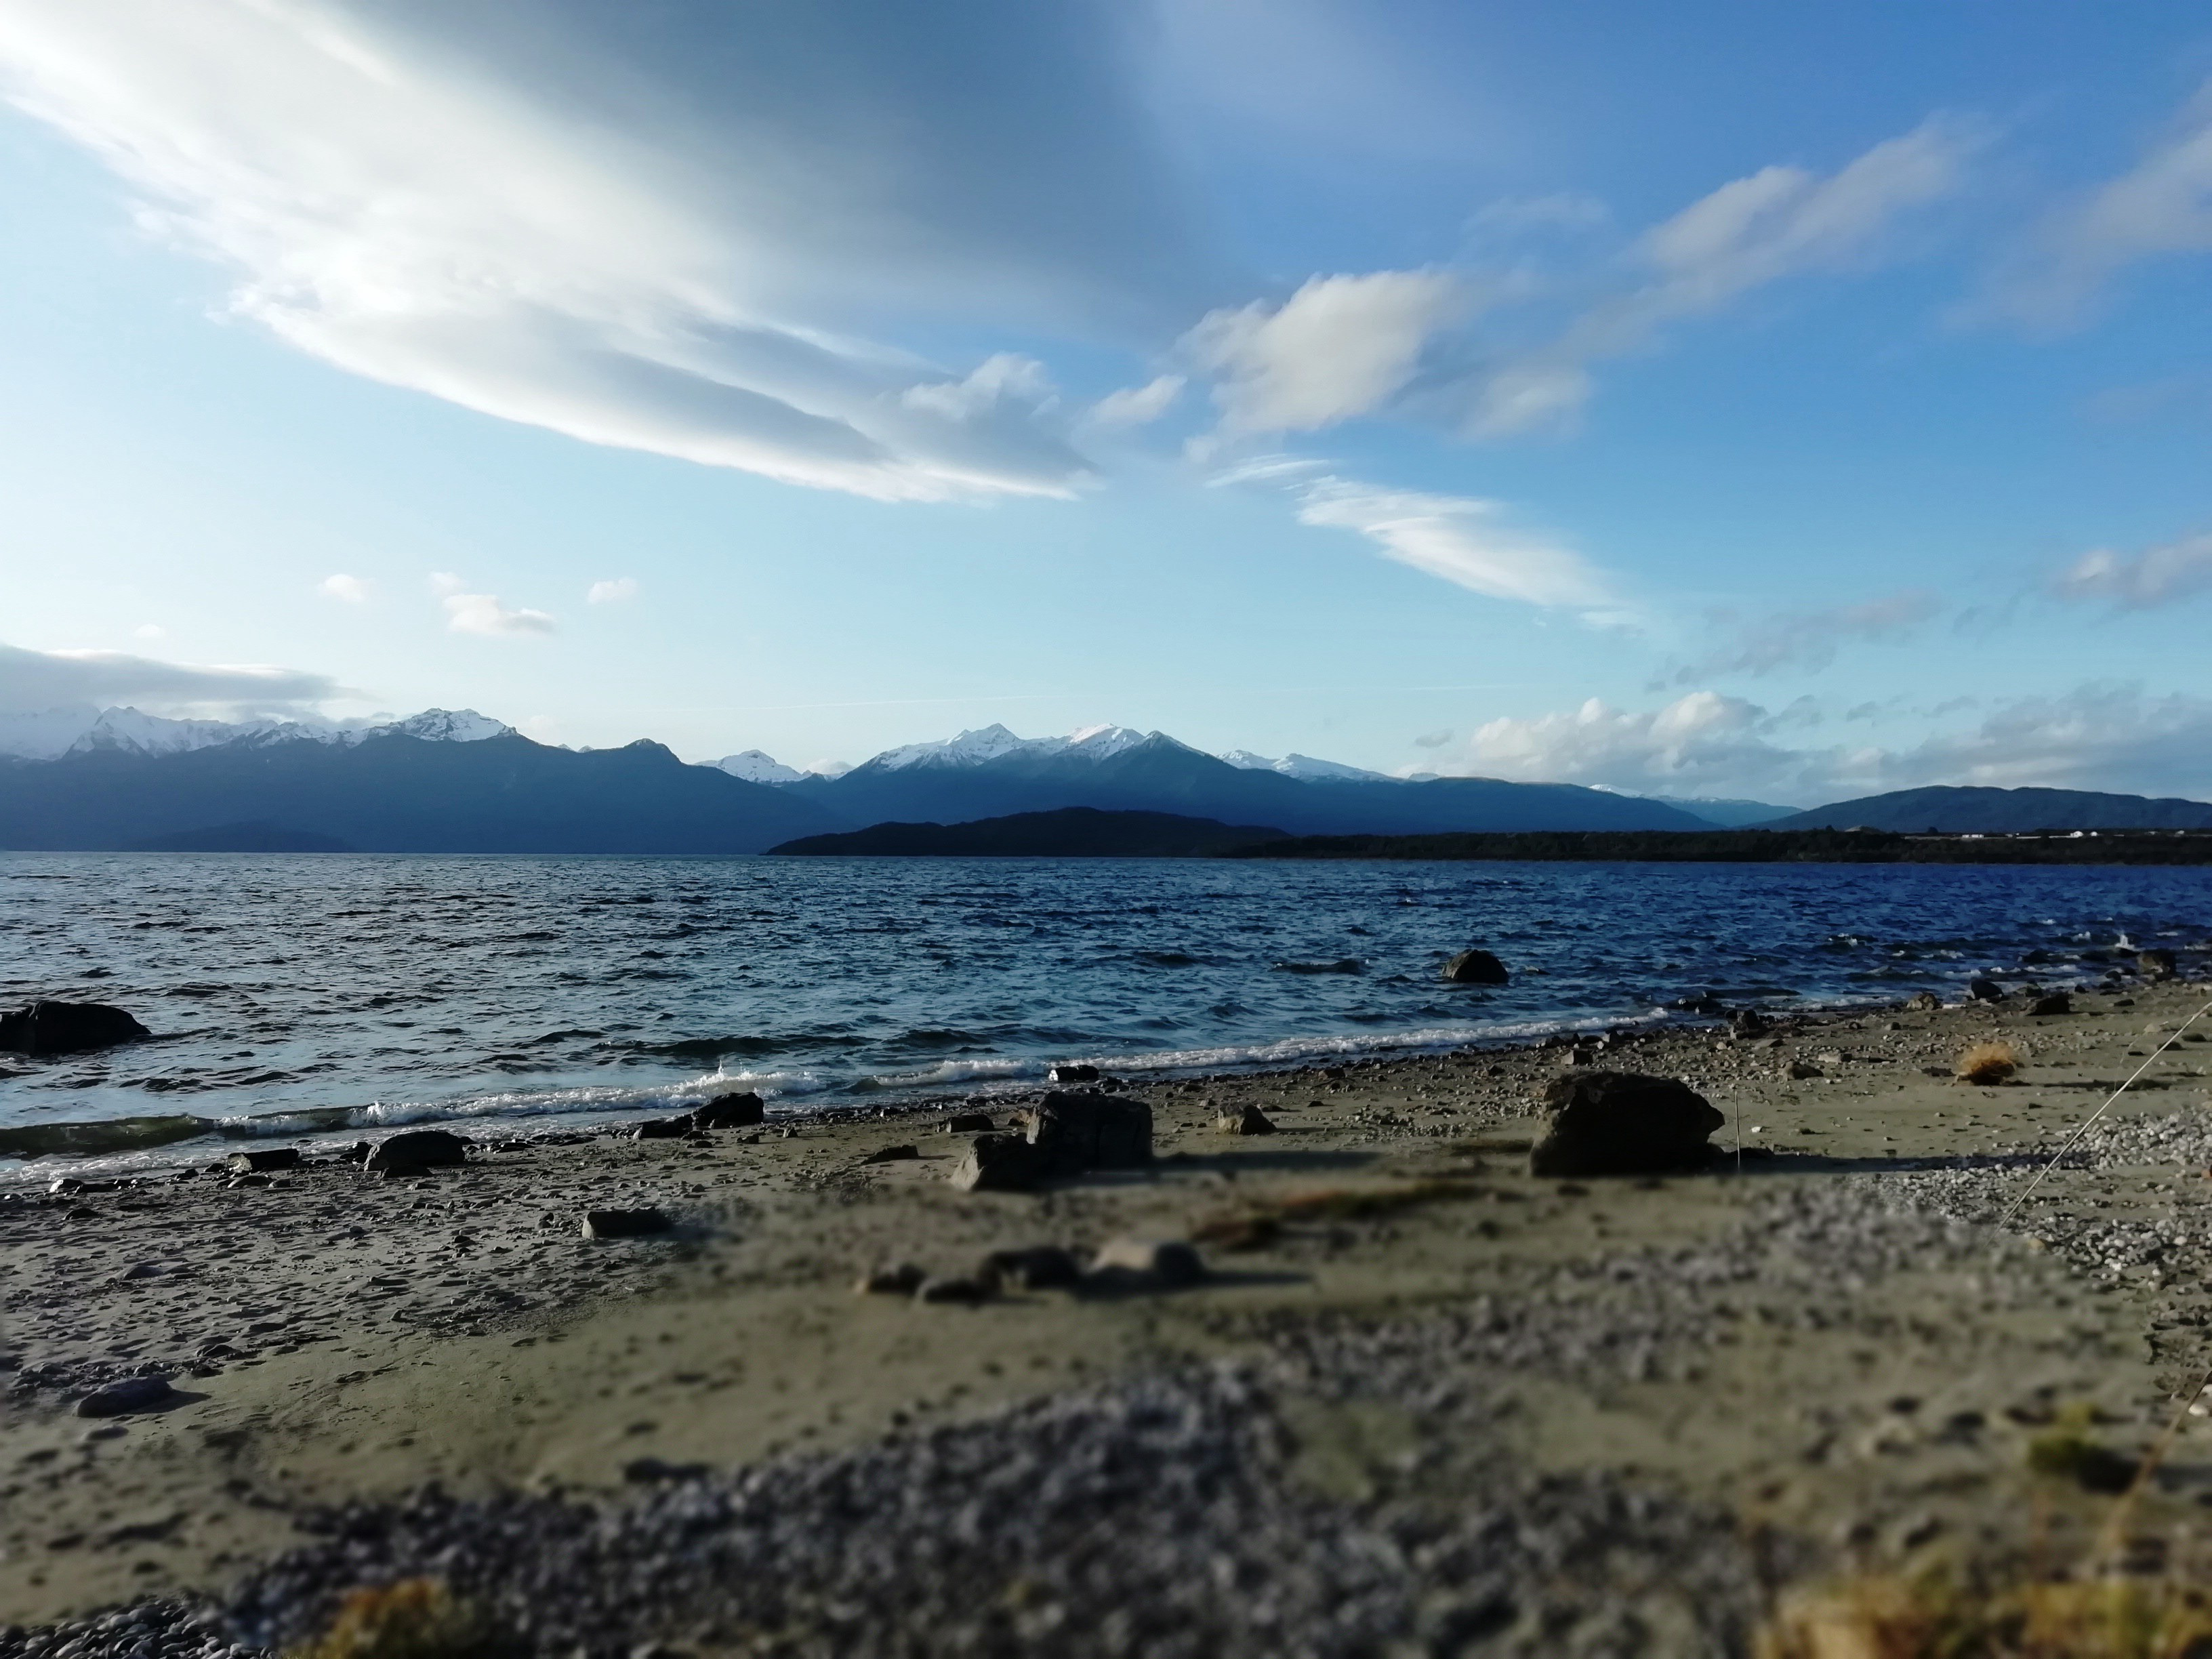 View of the Kepler Mountains behind the lake, from Manapōuri township